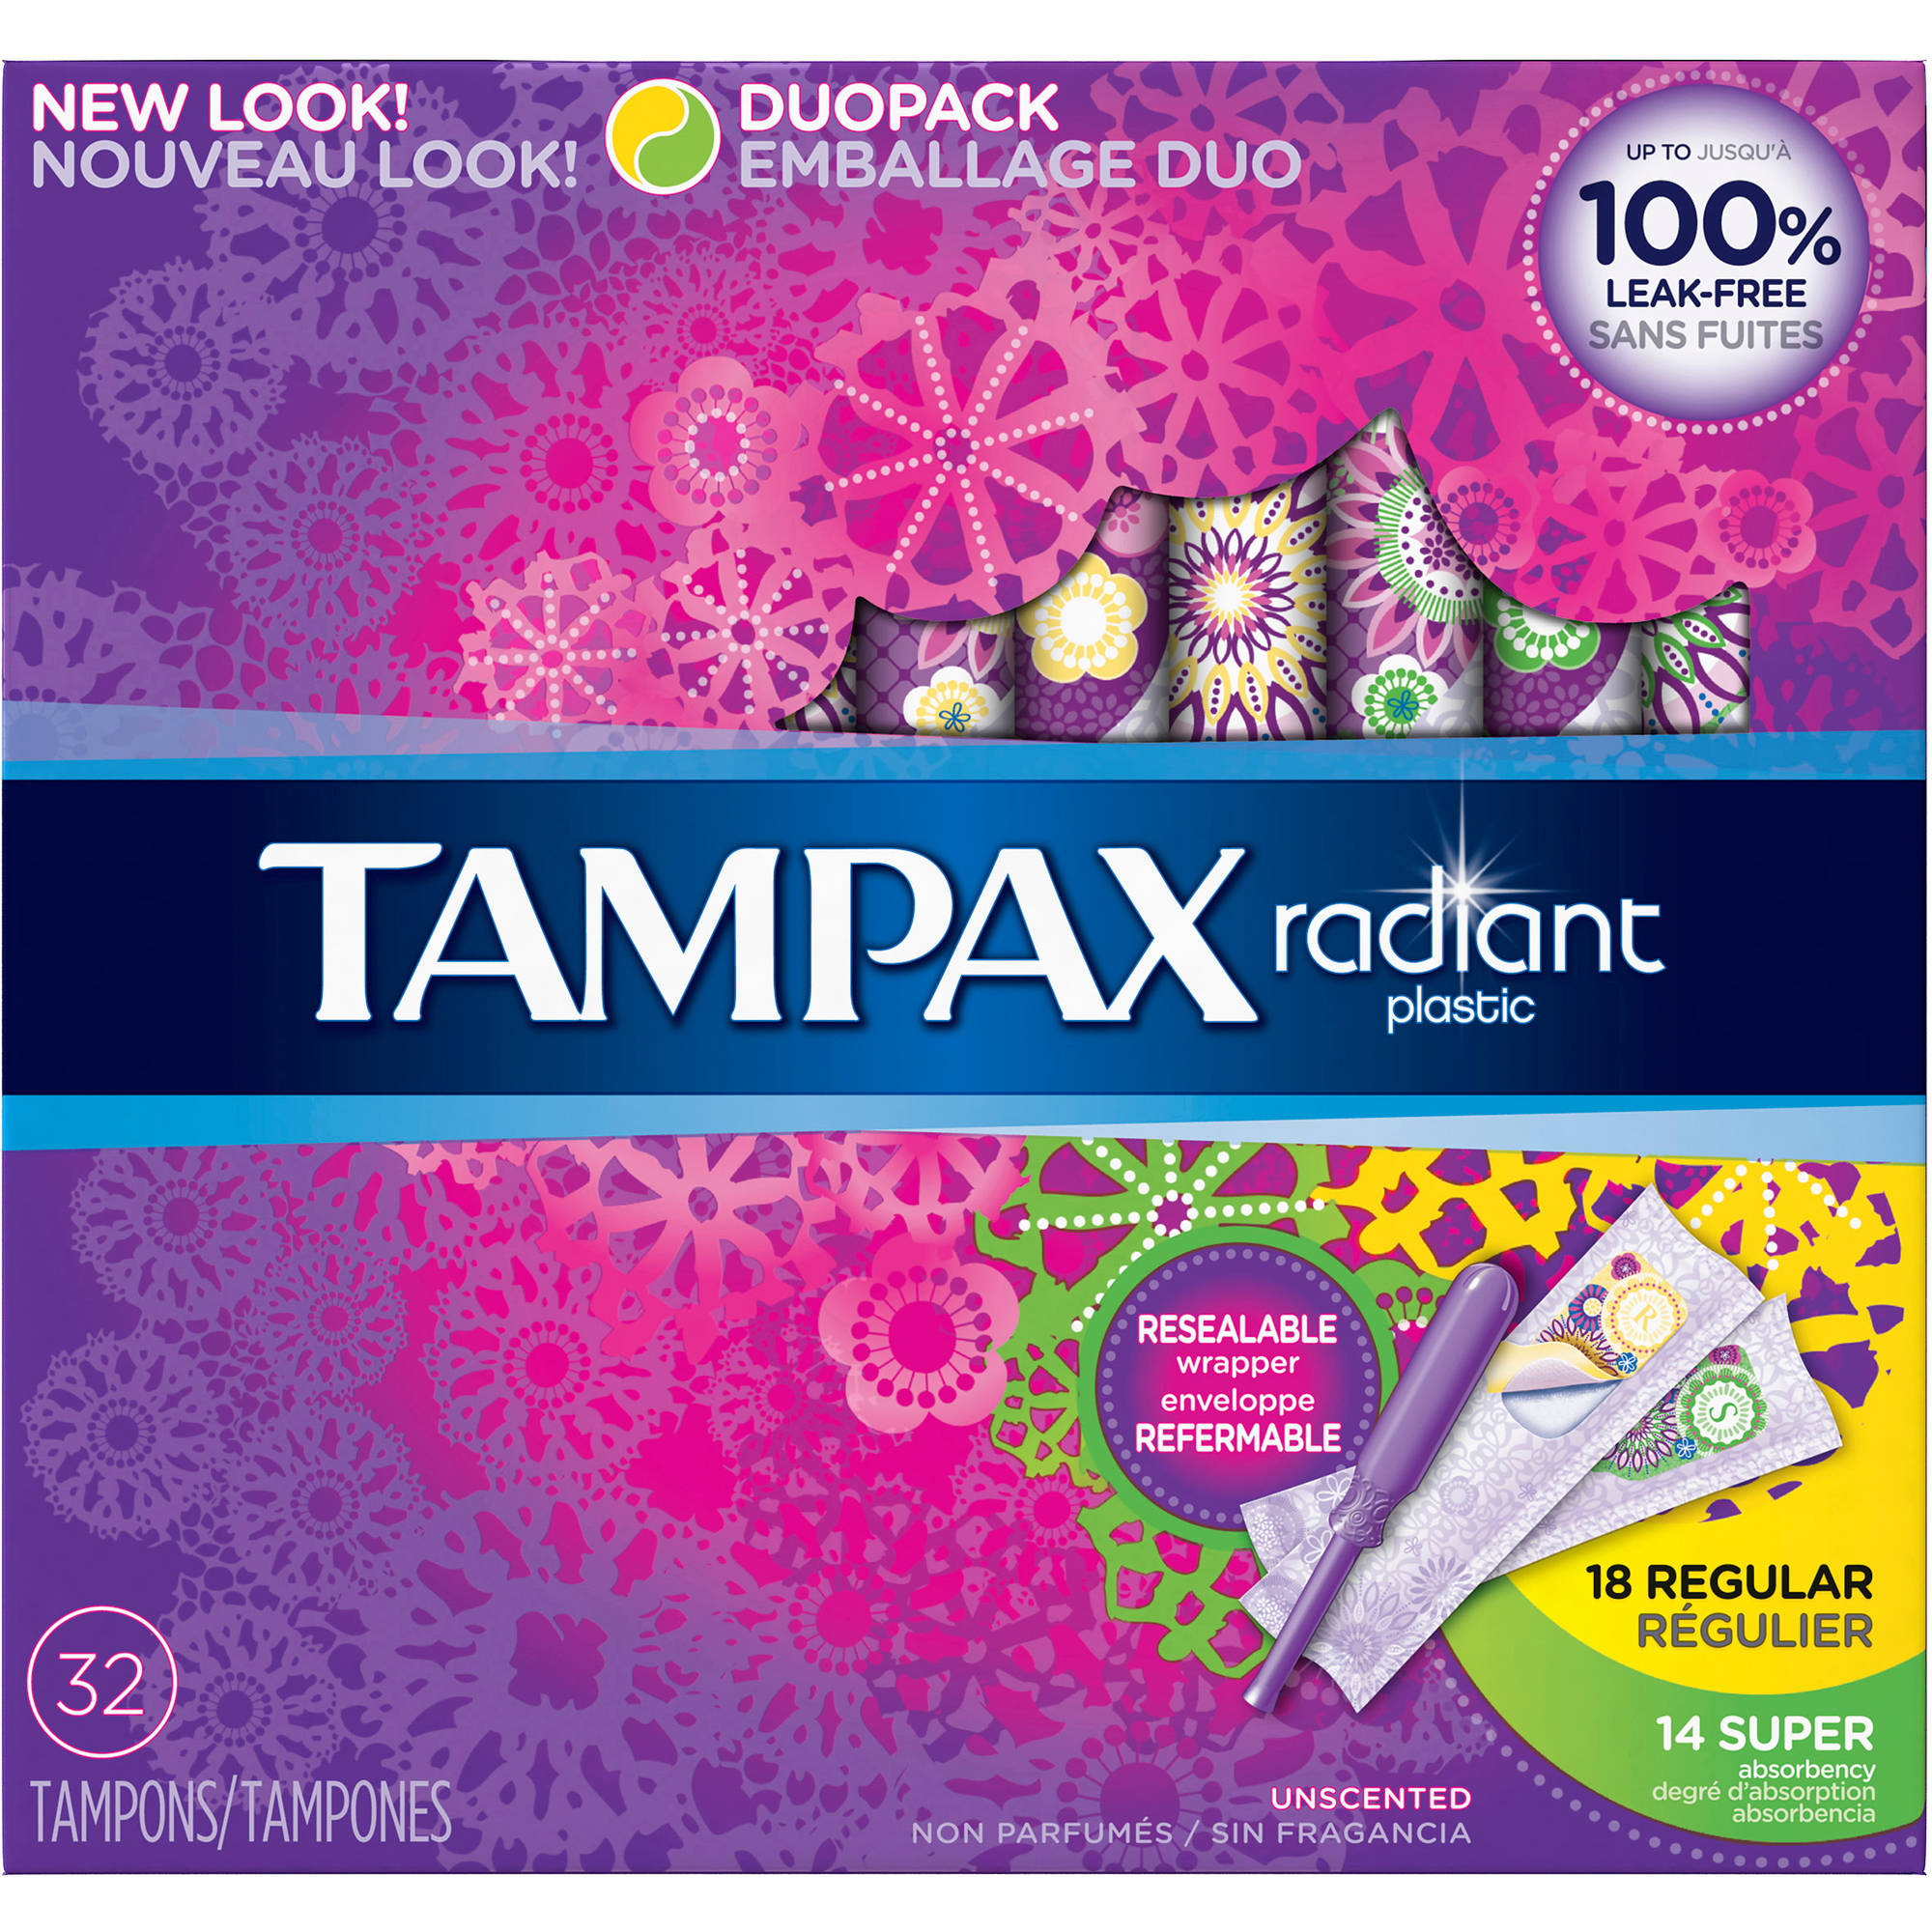 Tampax Radiant Plastic Unscented Mulitpax Absorbent Tampons, Regular/Super/Super Plus, (Choose your Count)